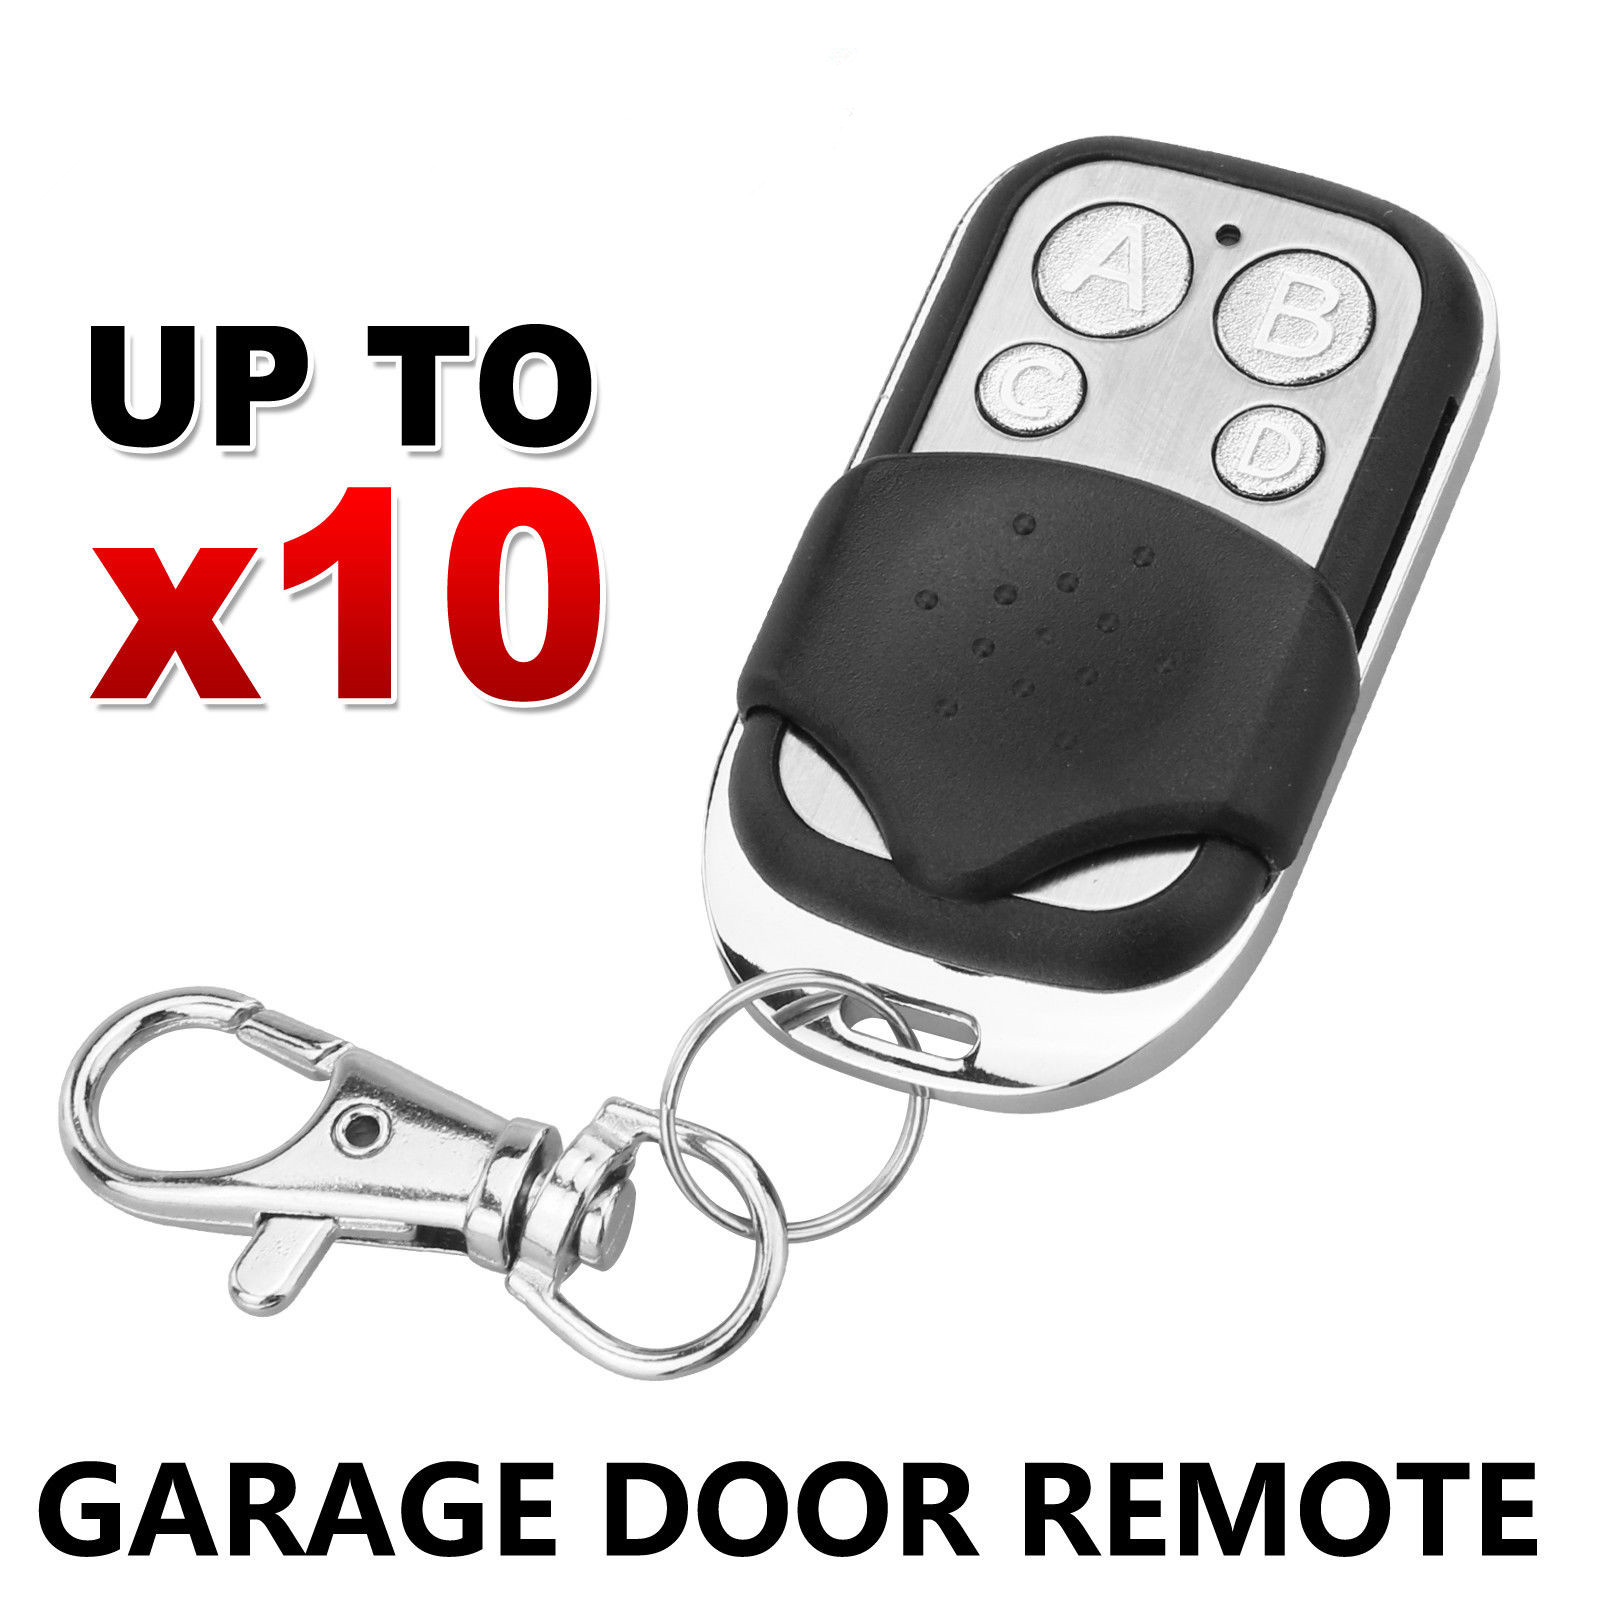 10x Universal Replacement Garage Door Car Gate Cloning Remote Control Key Fob 433 new nova centurion blue gate garage remote control replacement